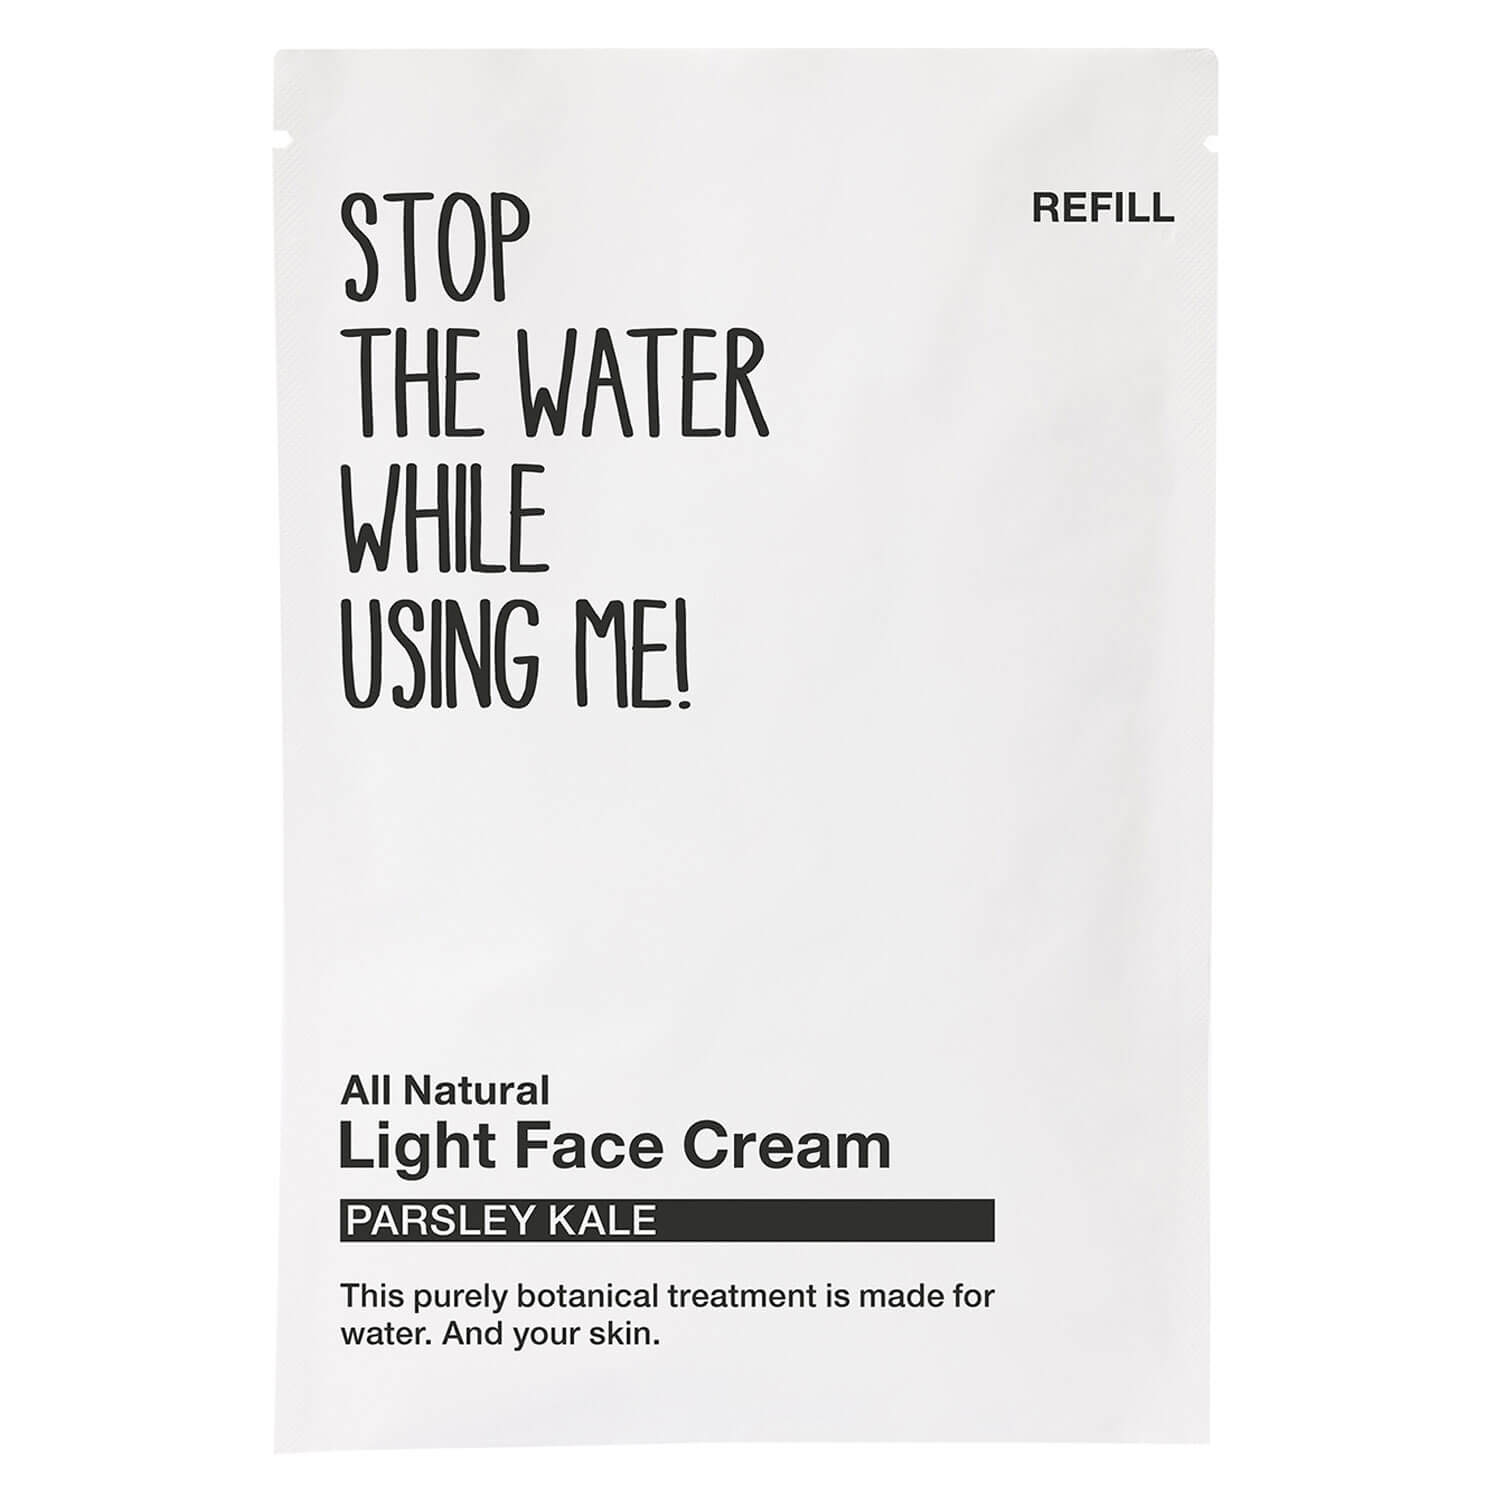 All Natural Face - Refill Light Face Cream Parsley Kale